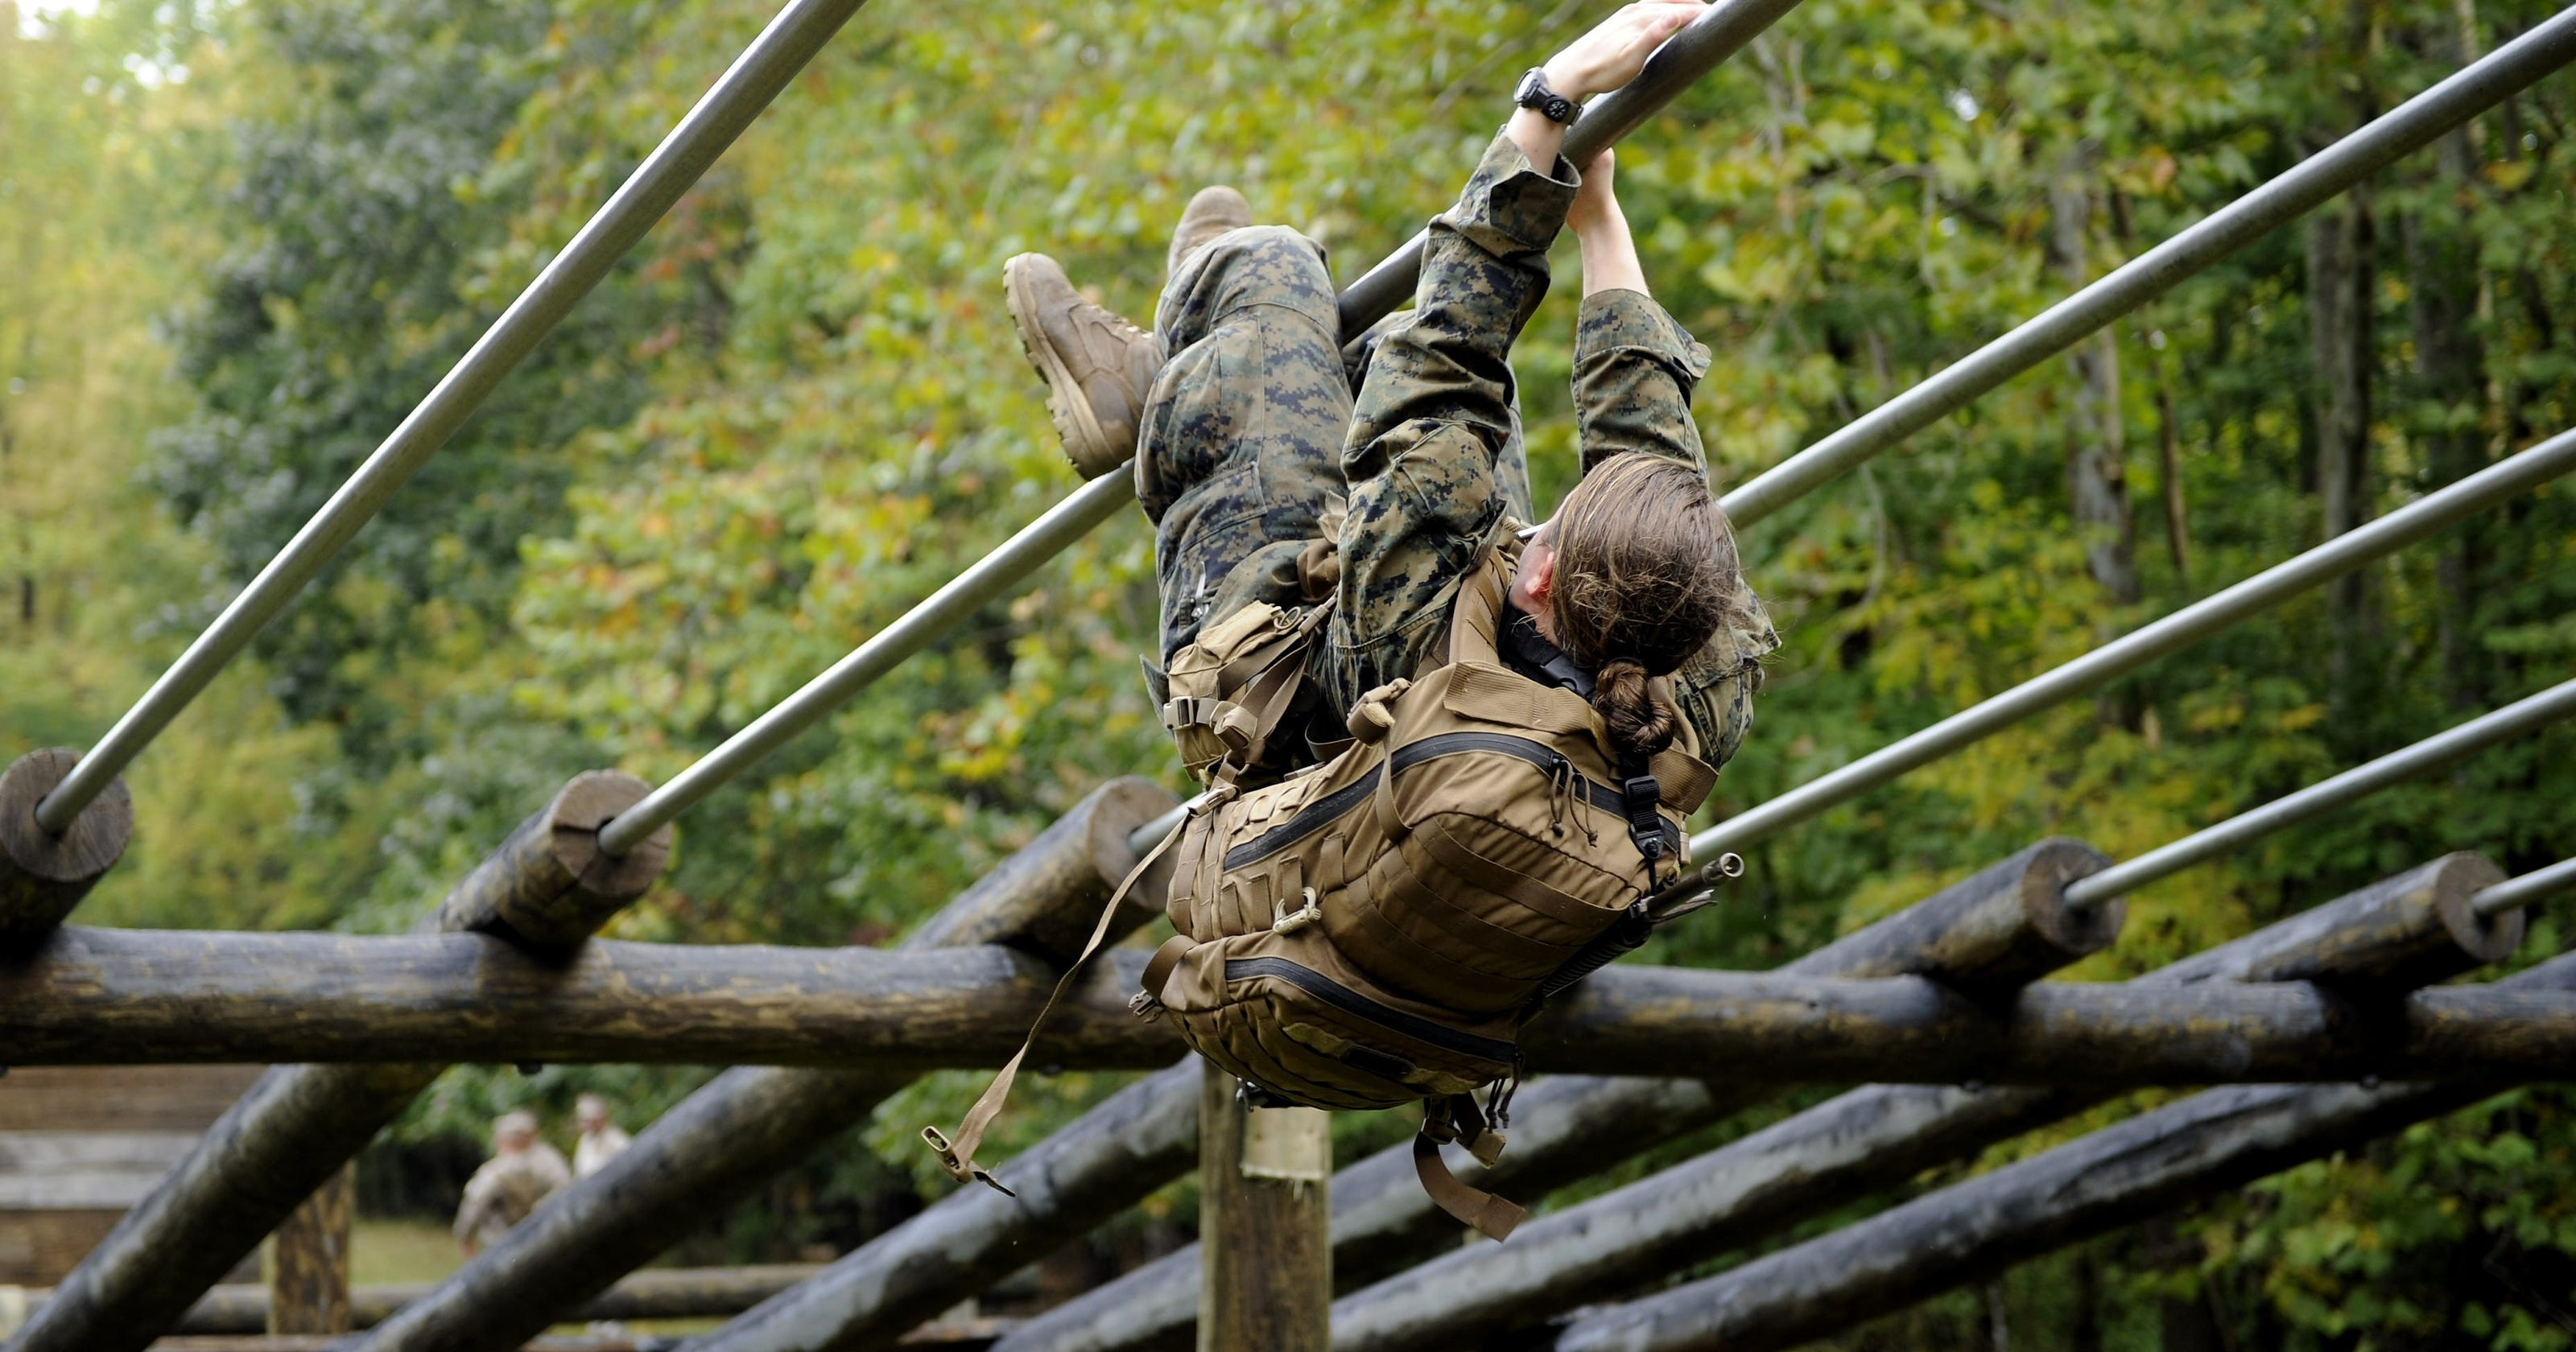 marines experiment puts women on infantry course for first